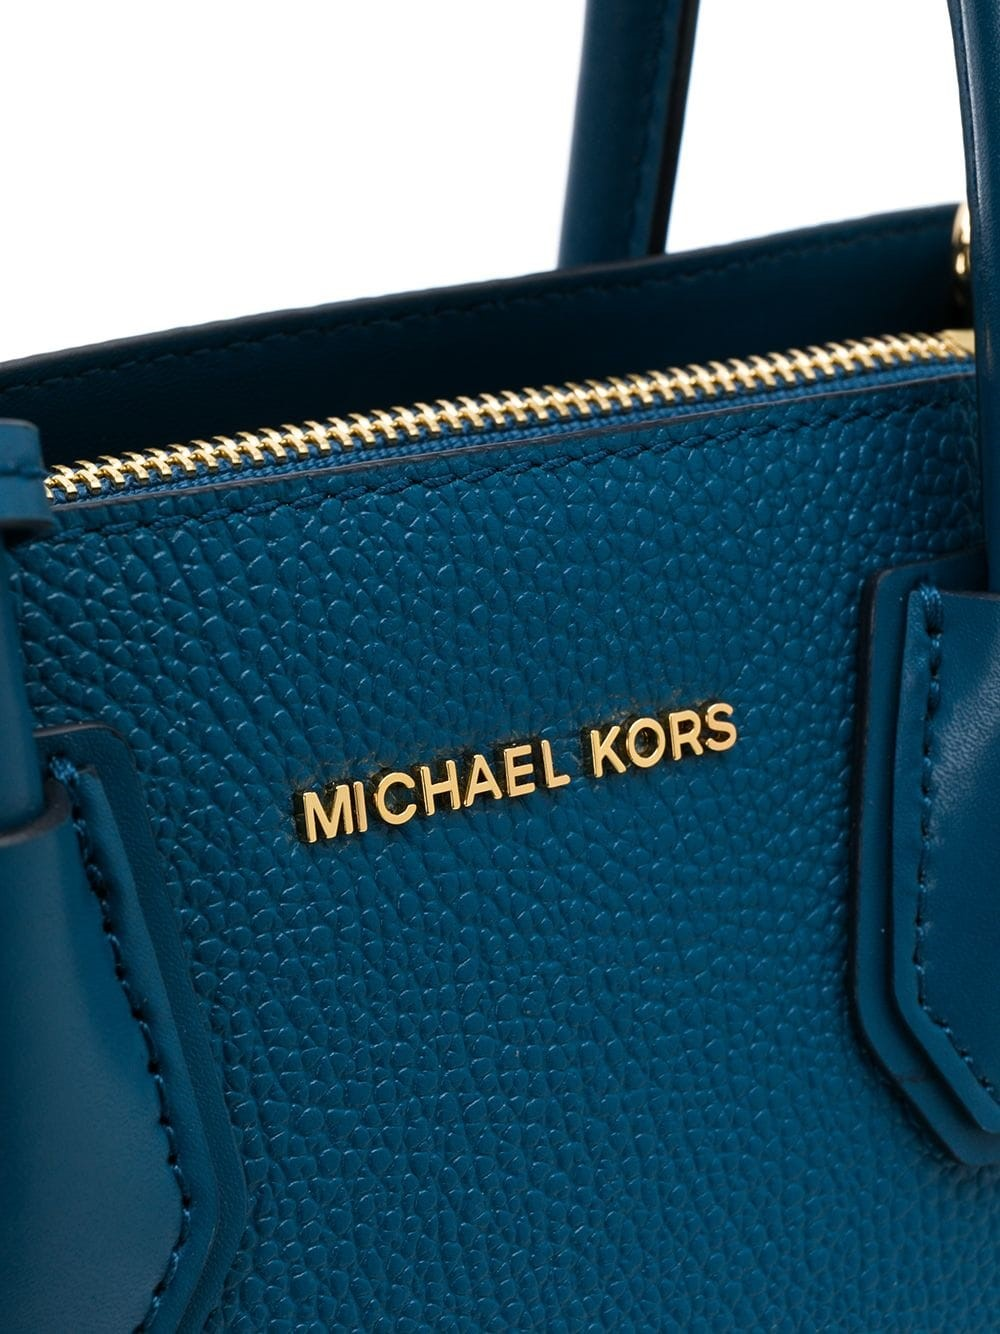 0a29be29295d michael kors mk LOGO TOTE BAG available on montiboutique.com - 27564